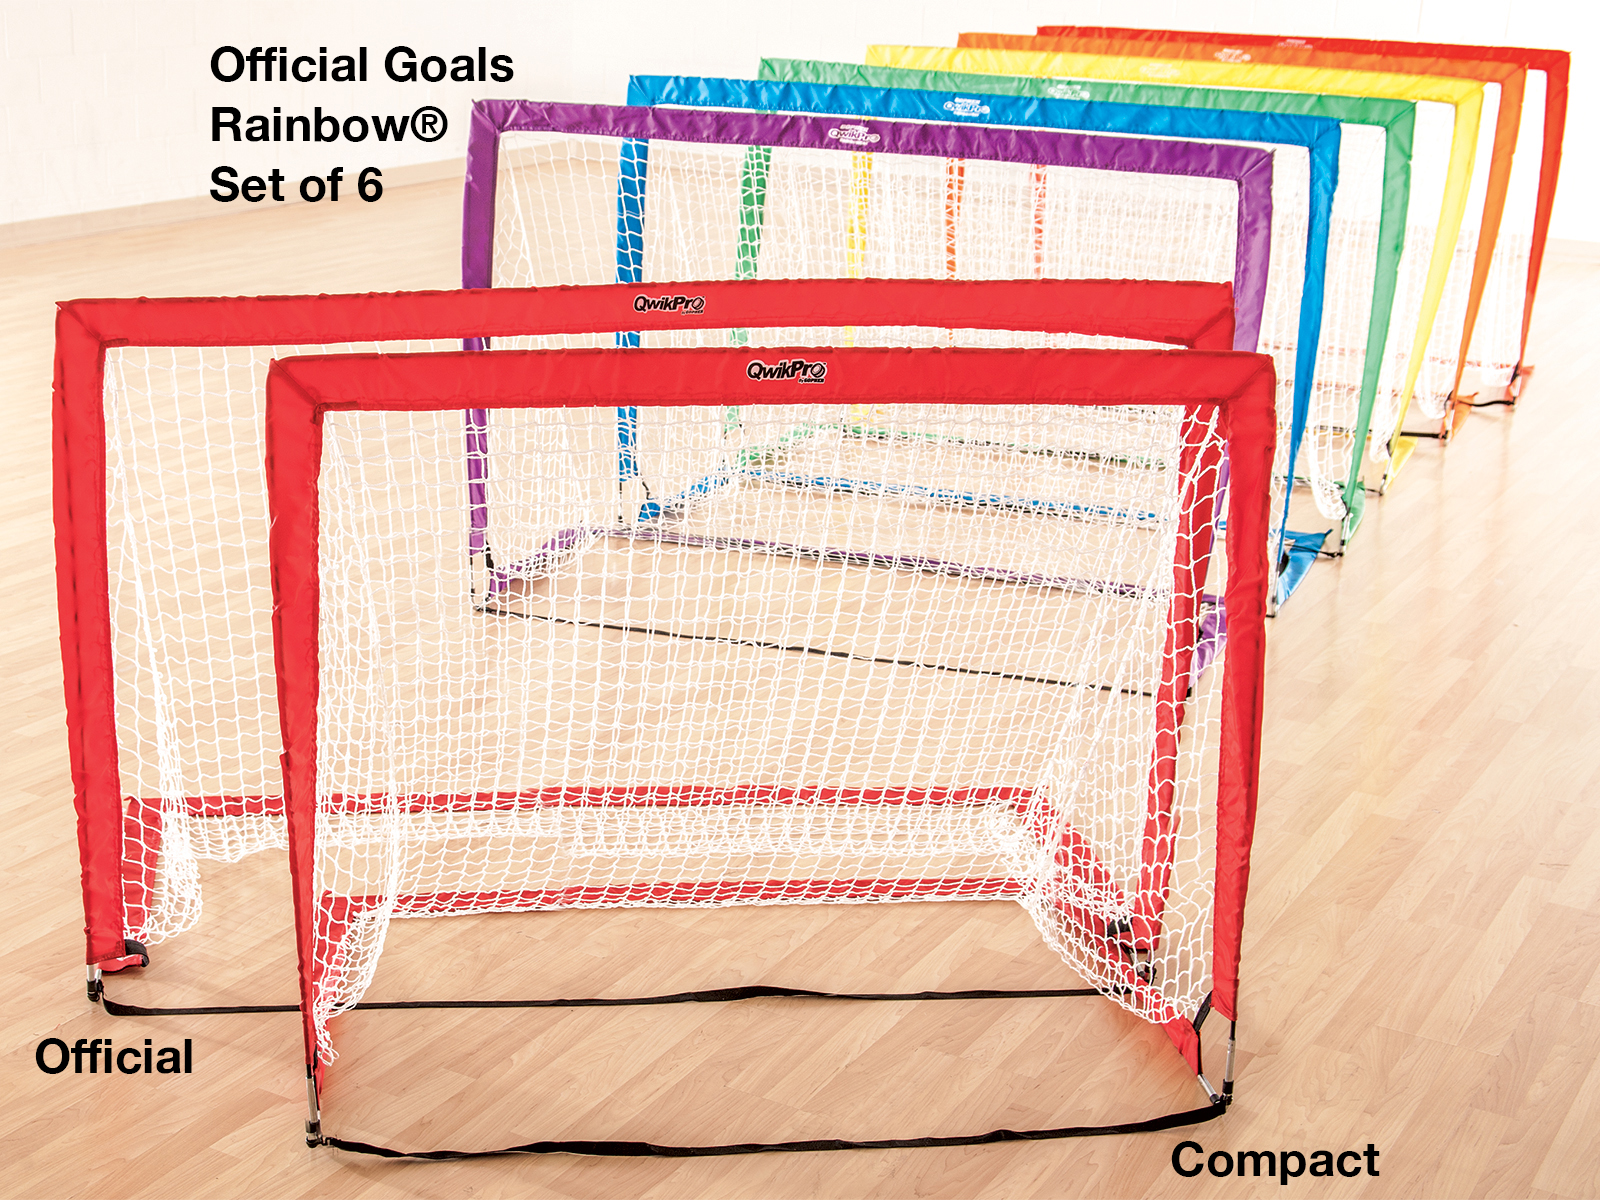 Pop up floor hockey goal set of 6